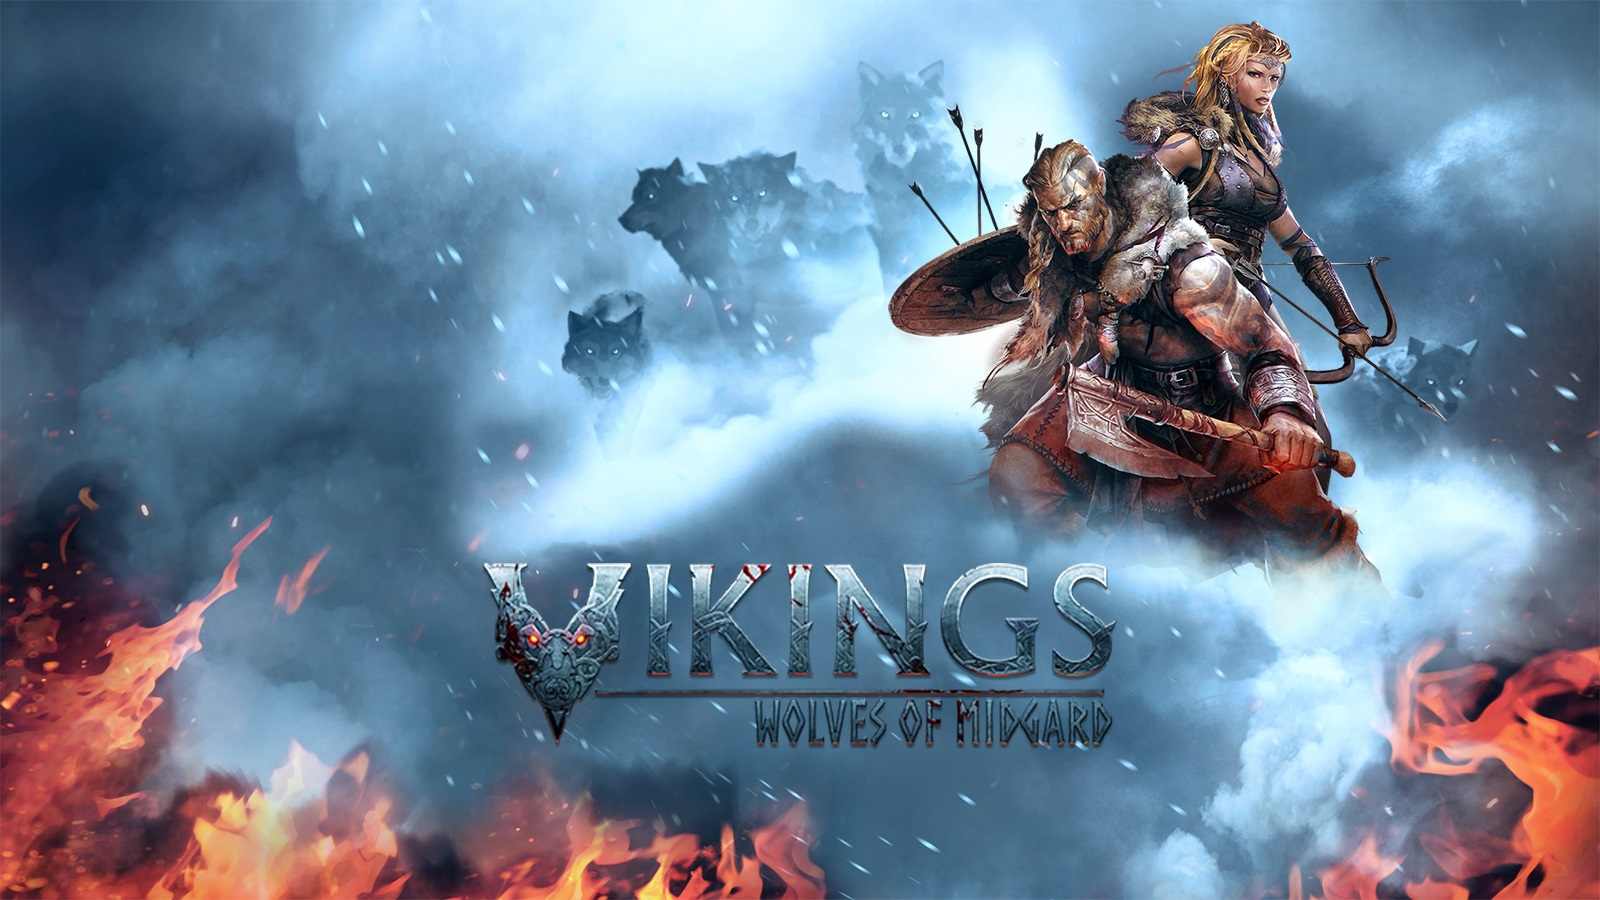 test de vikings wolves of midgard sur pc un jeu pass sous le radar geeks and com 39. Black Bedroom Furniture Sets. Home Design Ideas